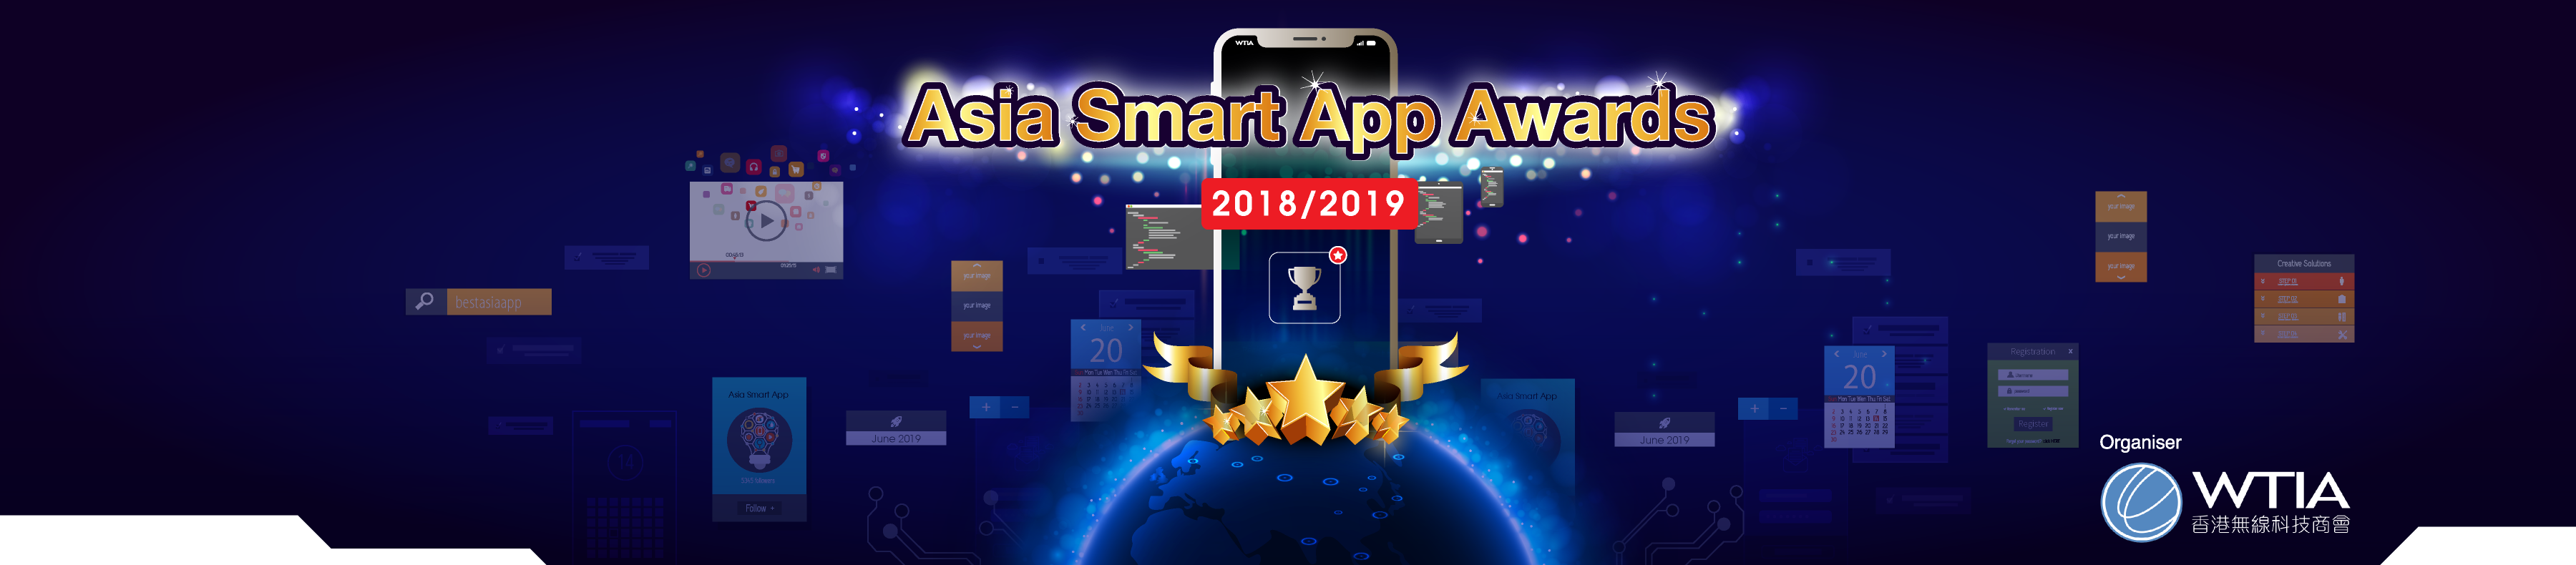 Asia Smart App Awards 2019 Certificate of Merit - eyes3 Sports Technology